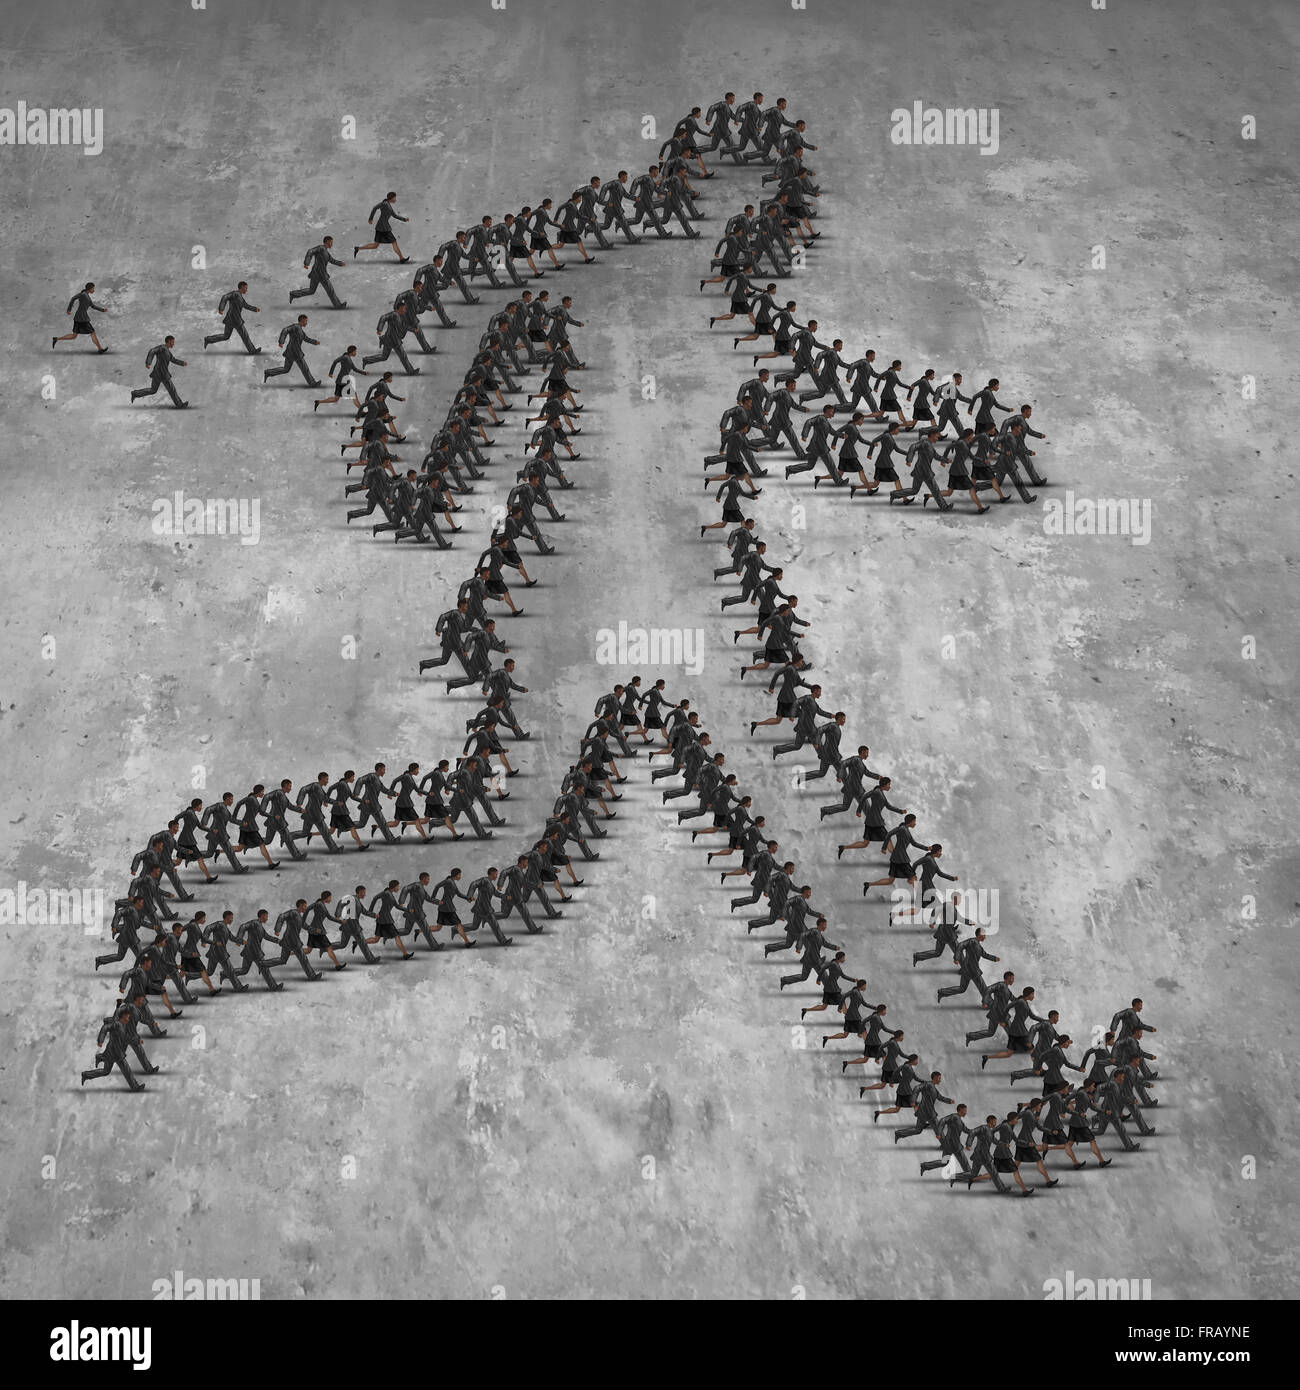 Business people group move concept as a team of businessmen and businesswomen running together forming an organised - Stock Image